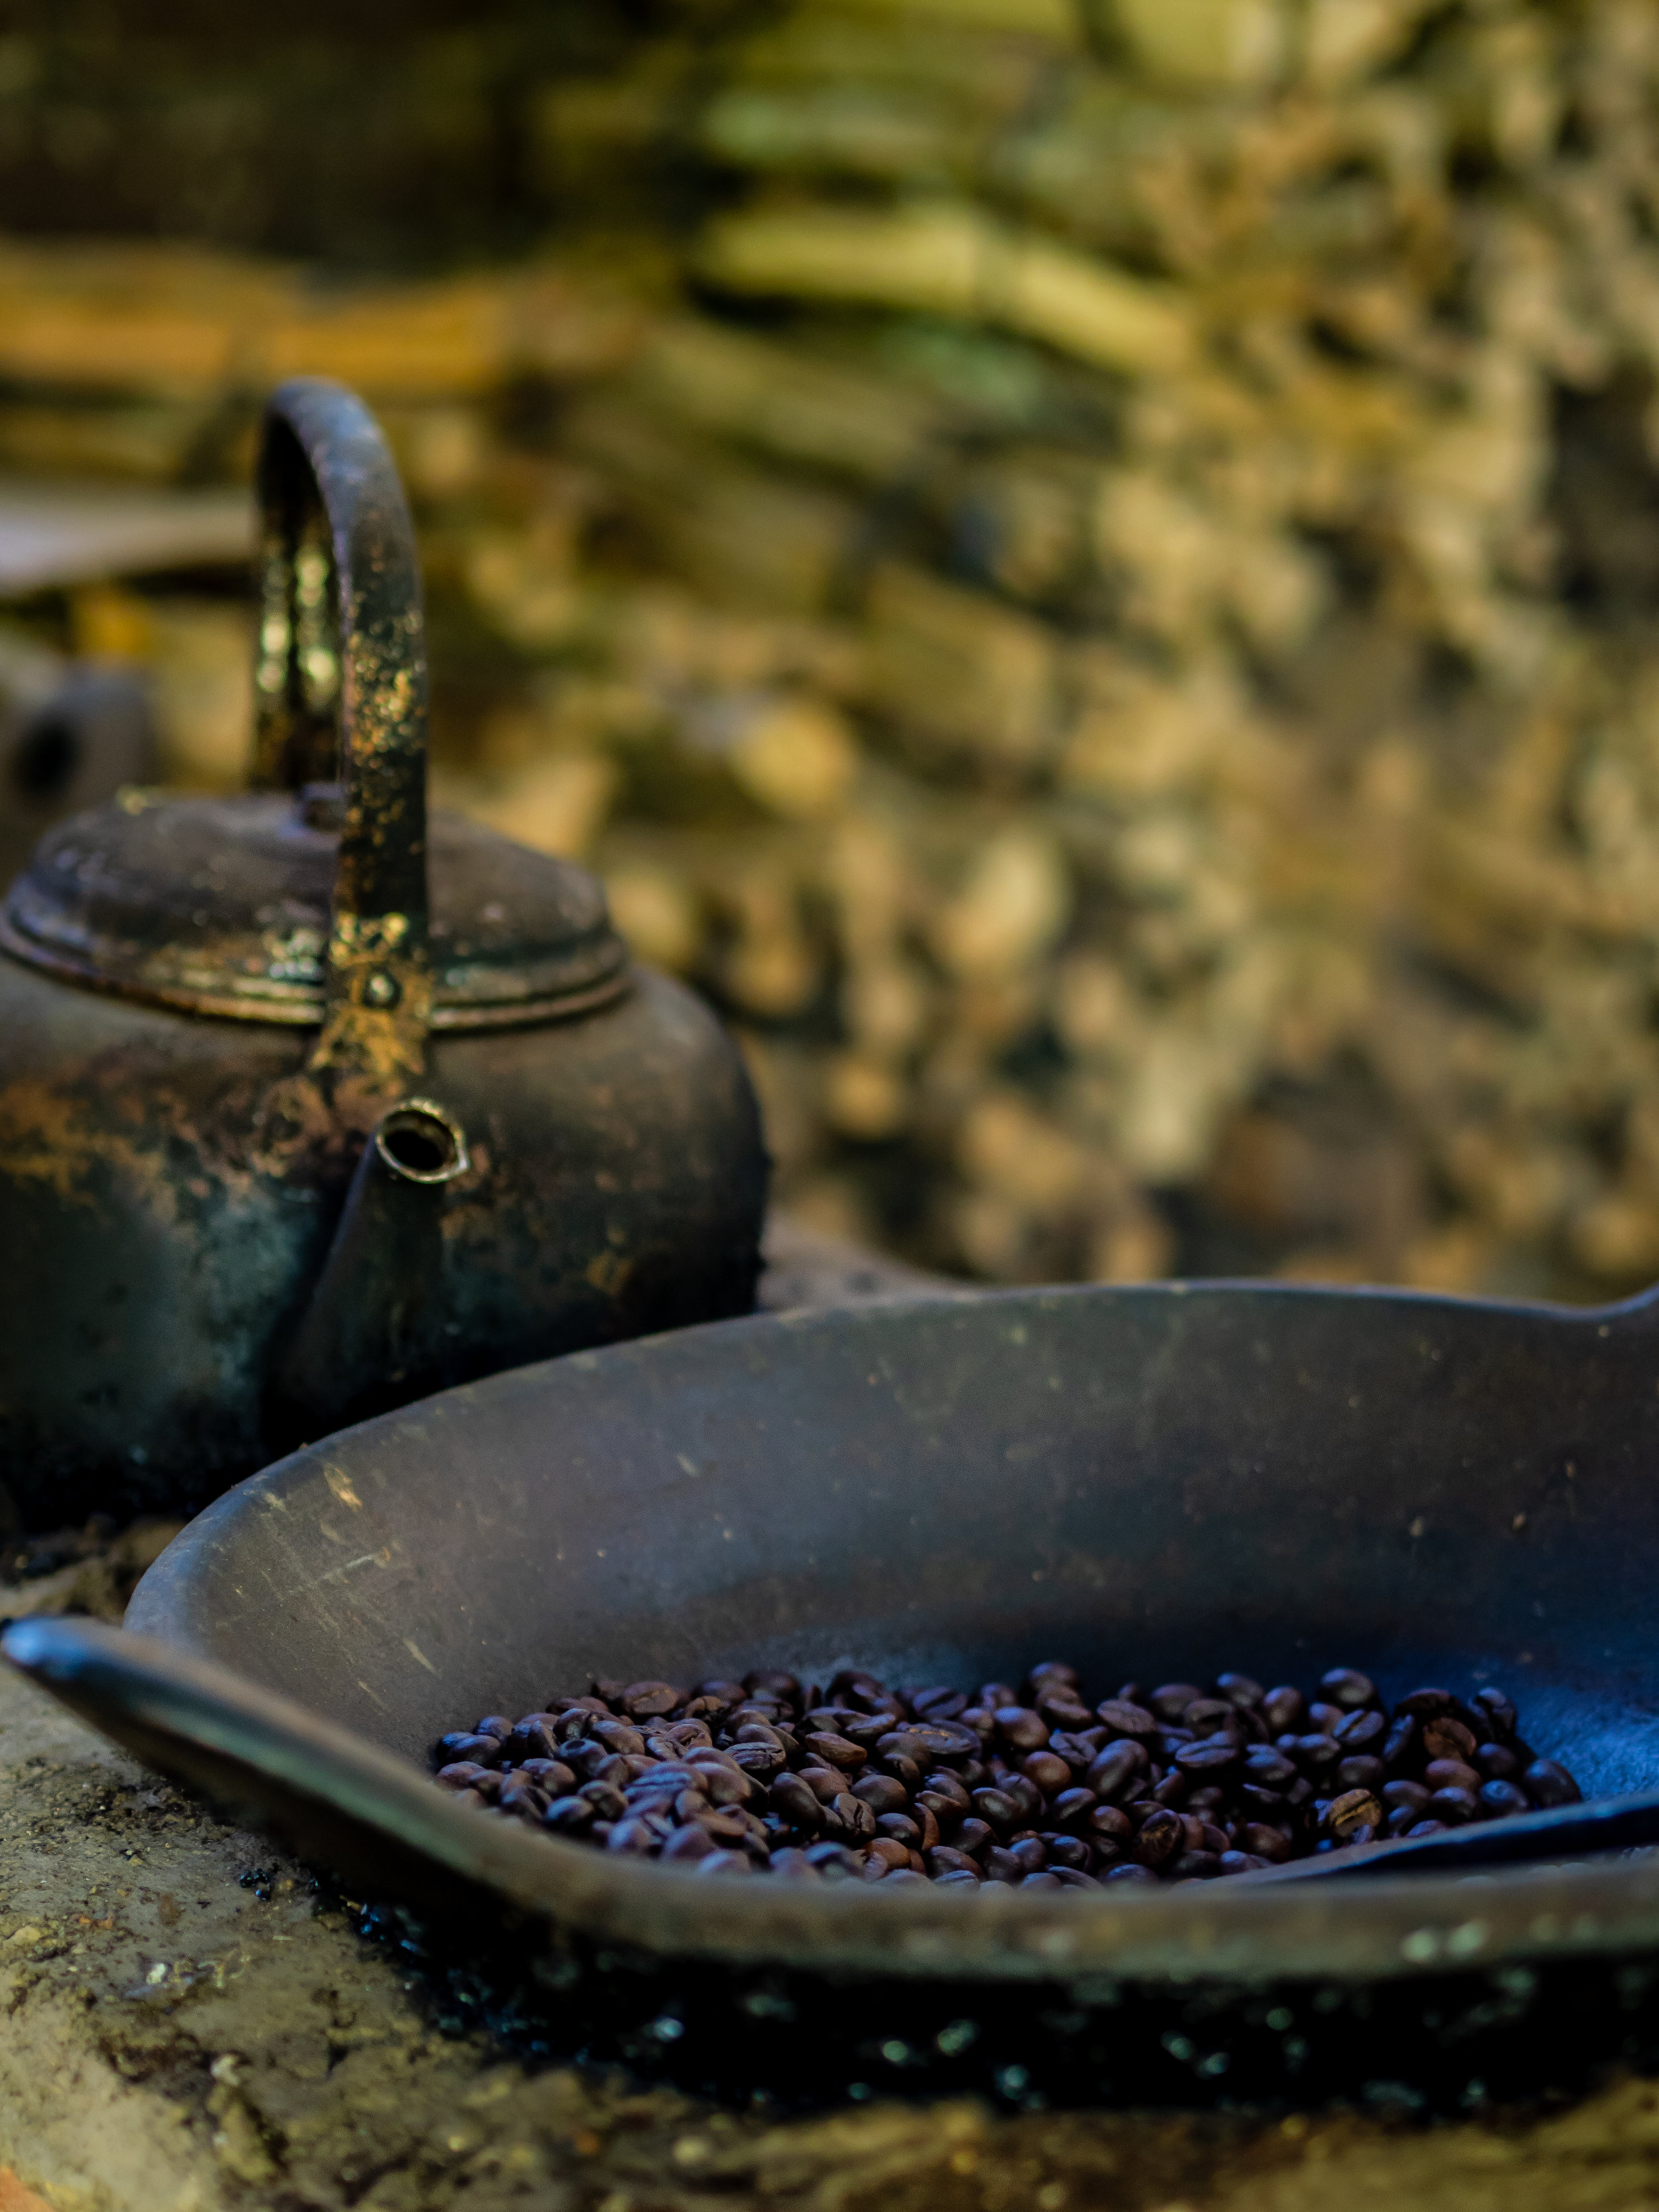 Musings by the Glass - Cat's Tale of Kopi Luwak - Time to Roast the Coffee Beans